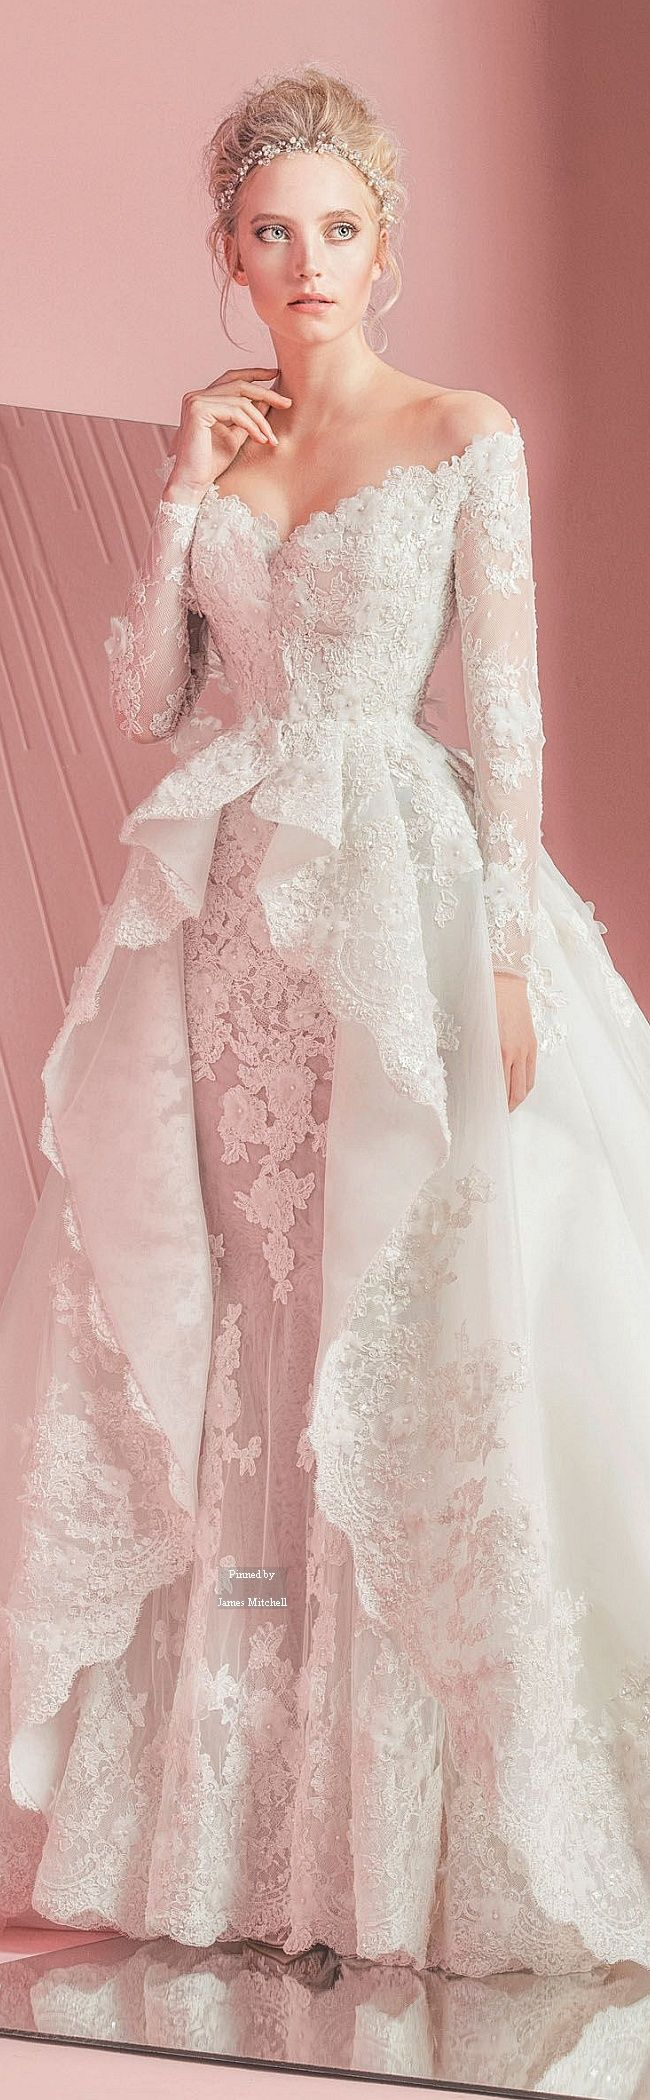 53 Wedding Dress : Best images about here comes the bride on